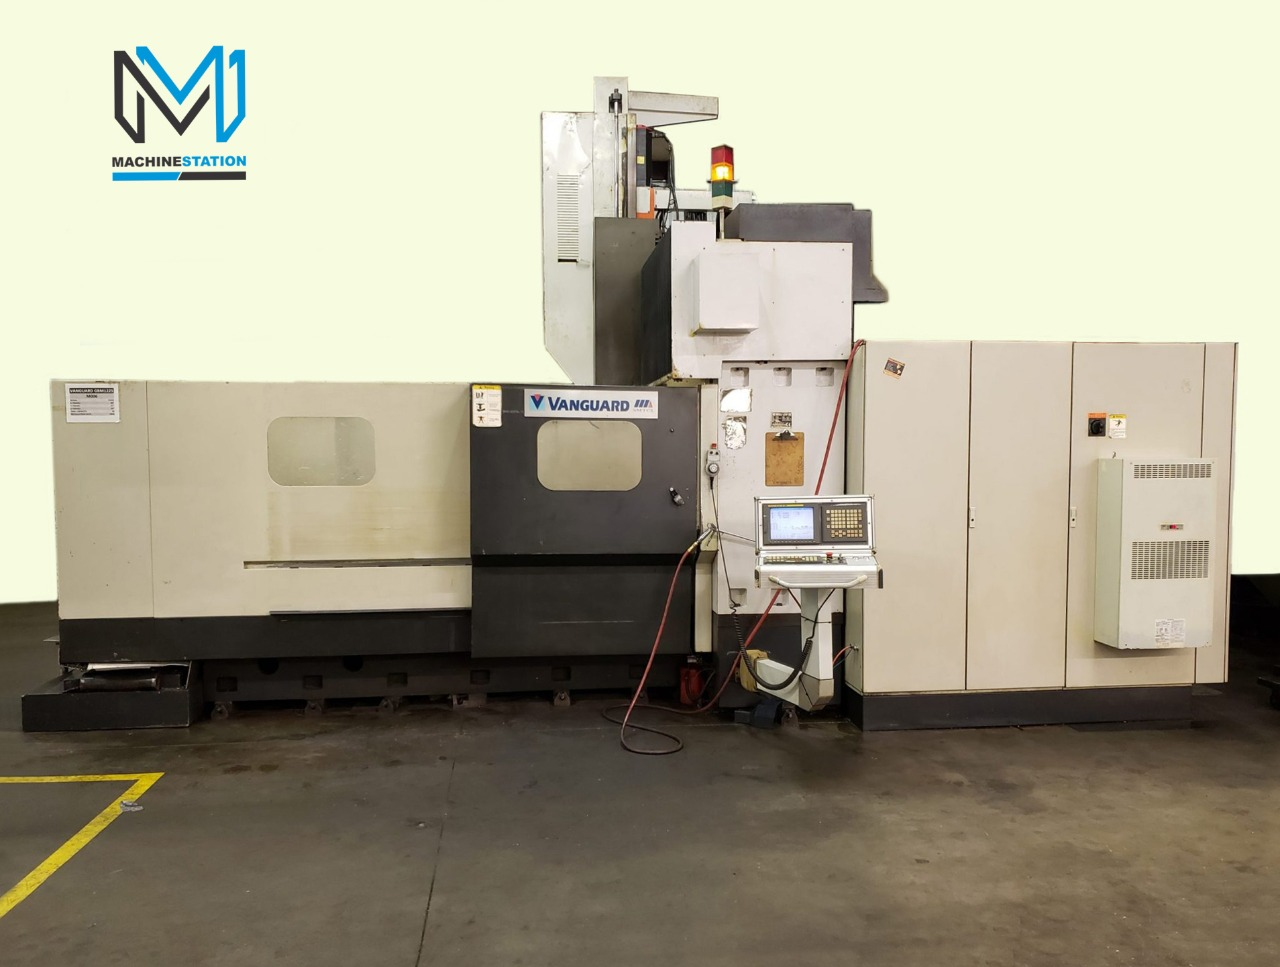 Vanguard GBM 1225 CNC Vertical Bridge Milling(1)